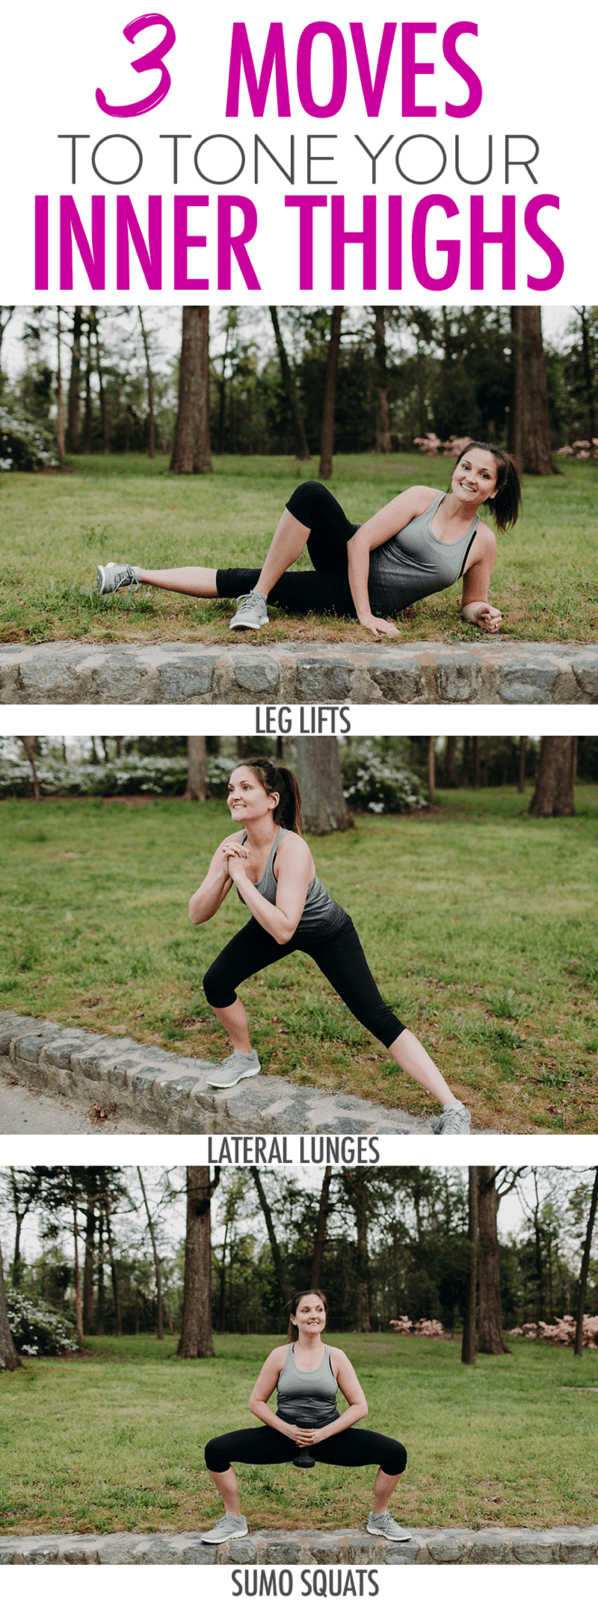 Sharing my favorite inner thigh exercises to help strengthen the muscles in this area. Three simple moves that are easy to add to your current workout routine.